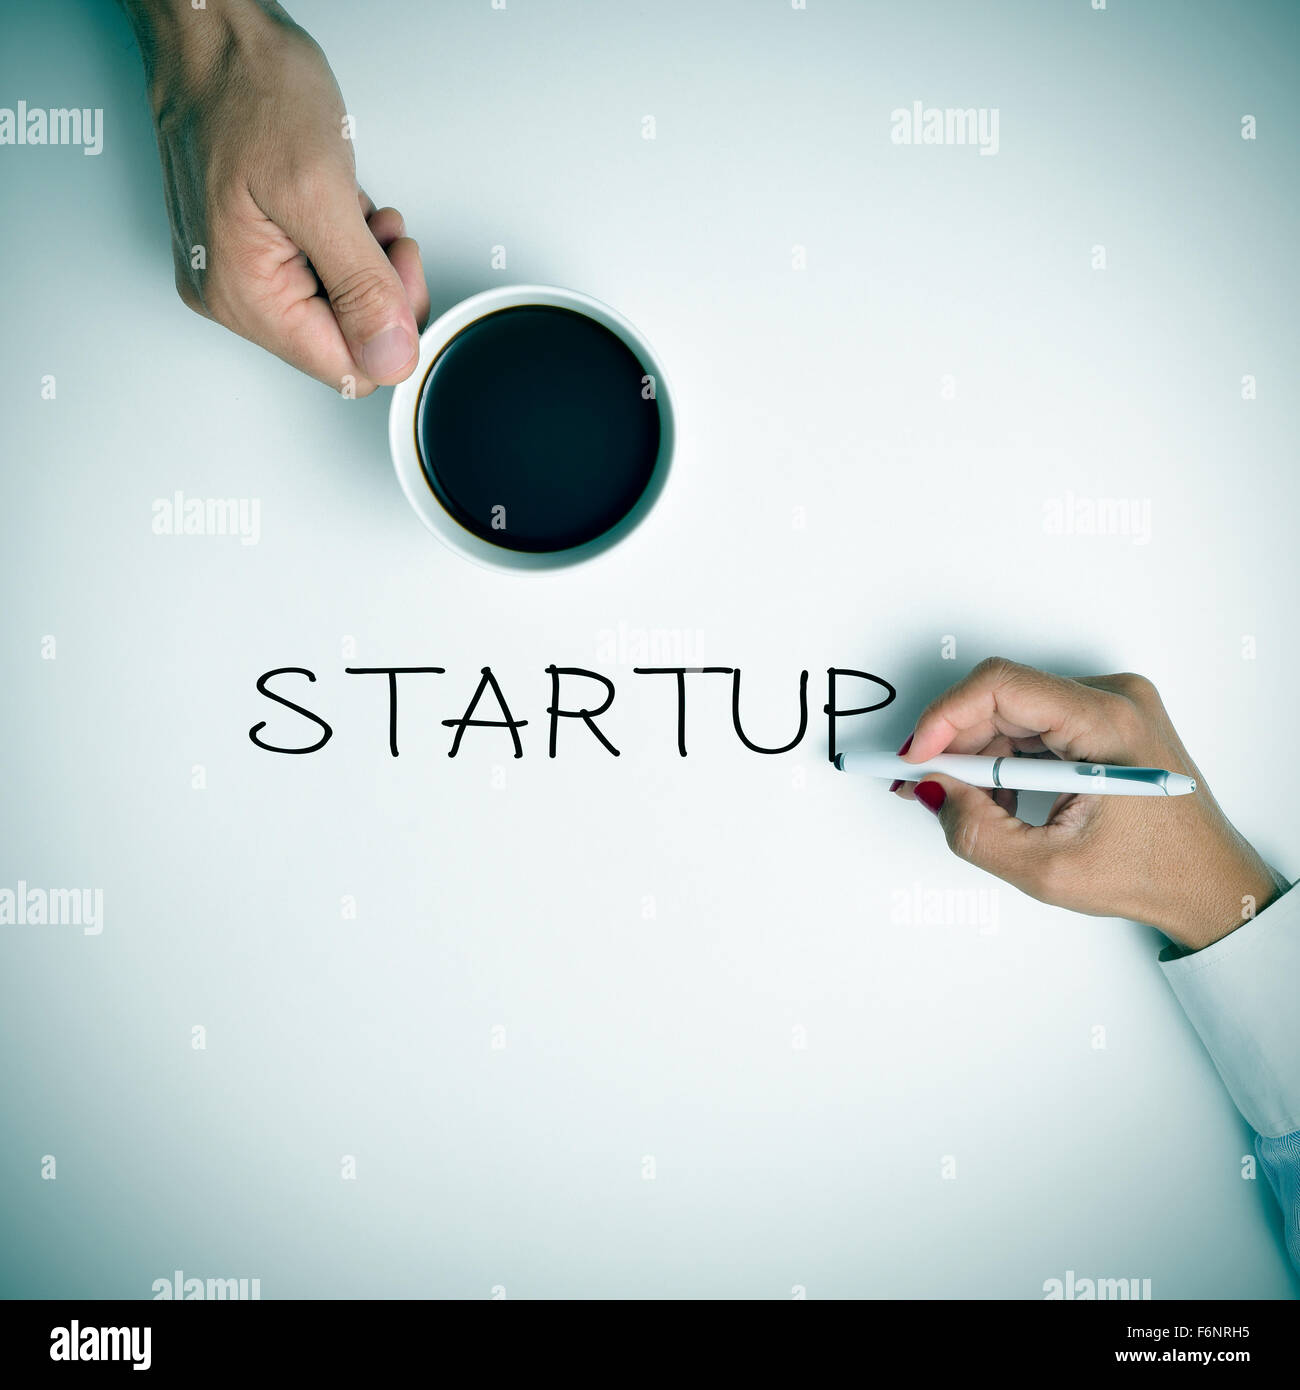 high-angle shot of a young man with a cup of coffee and a young woman writing the text startup with a pen - Stock Image